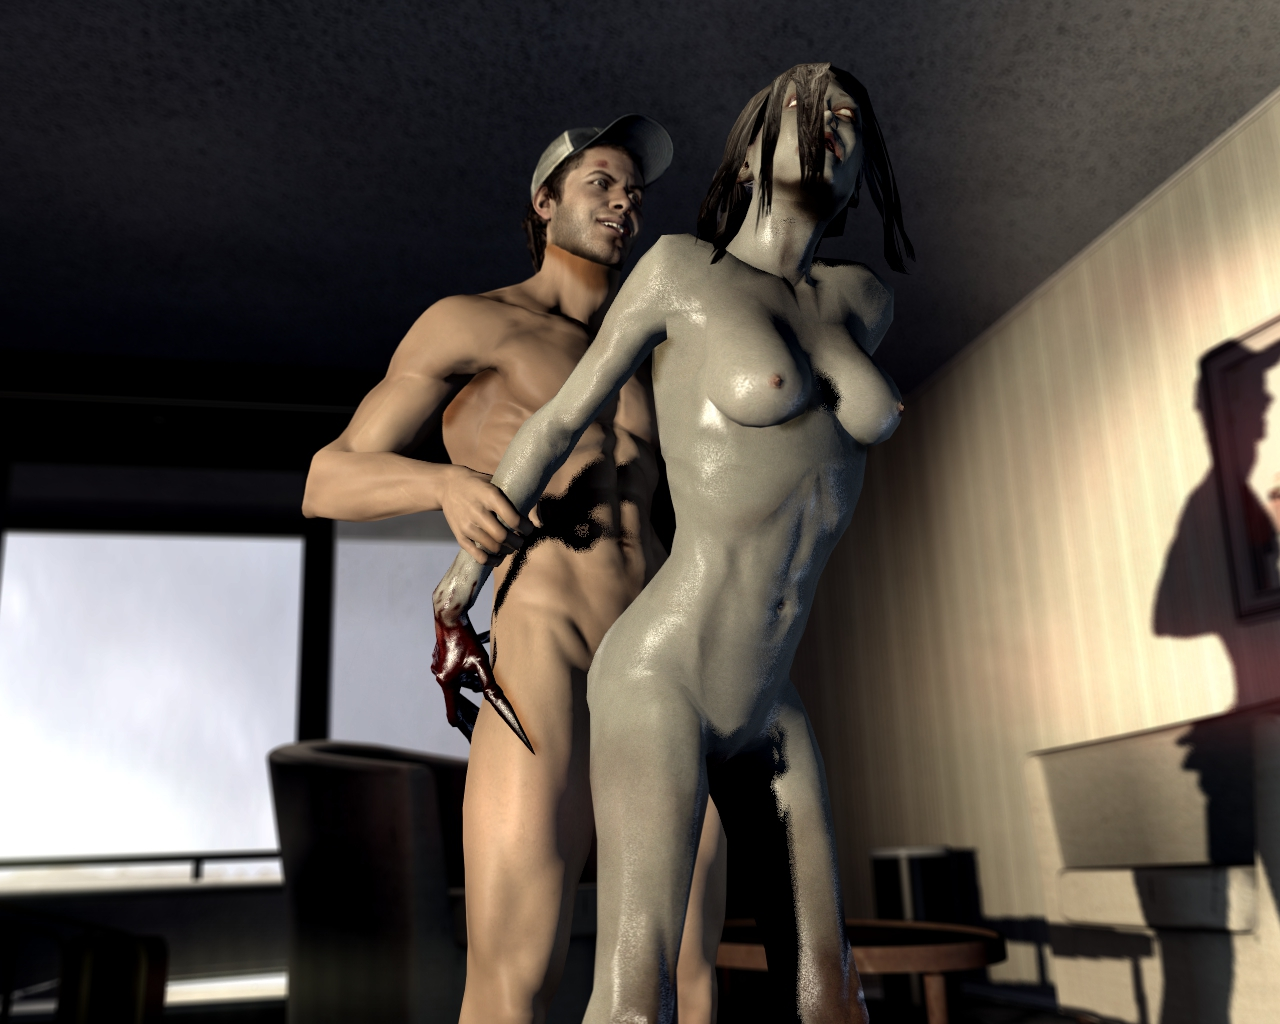 Porn hunter l4d videos hentia tube